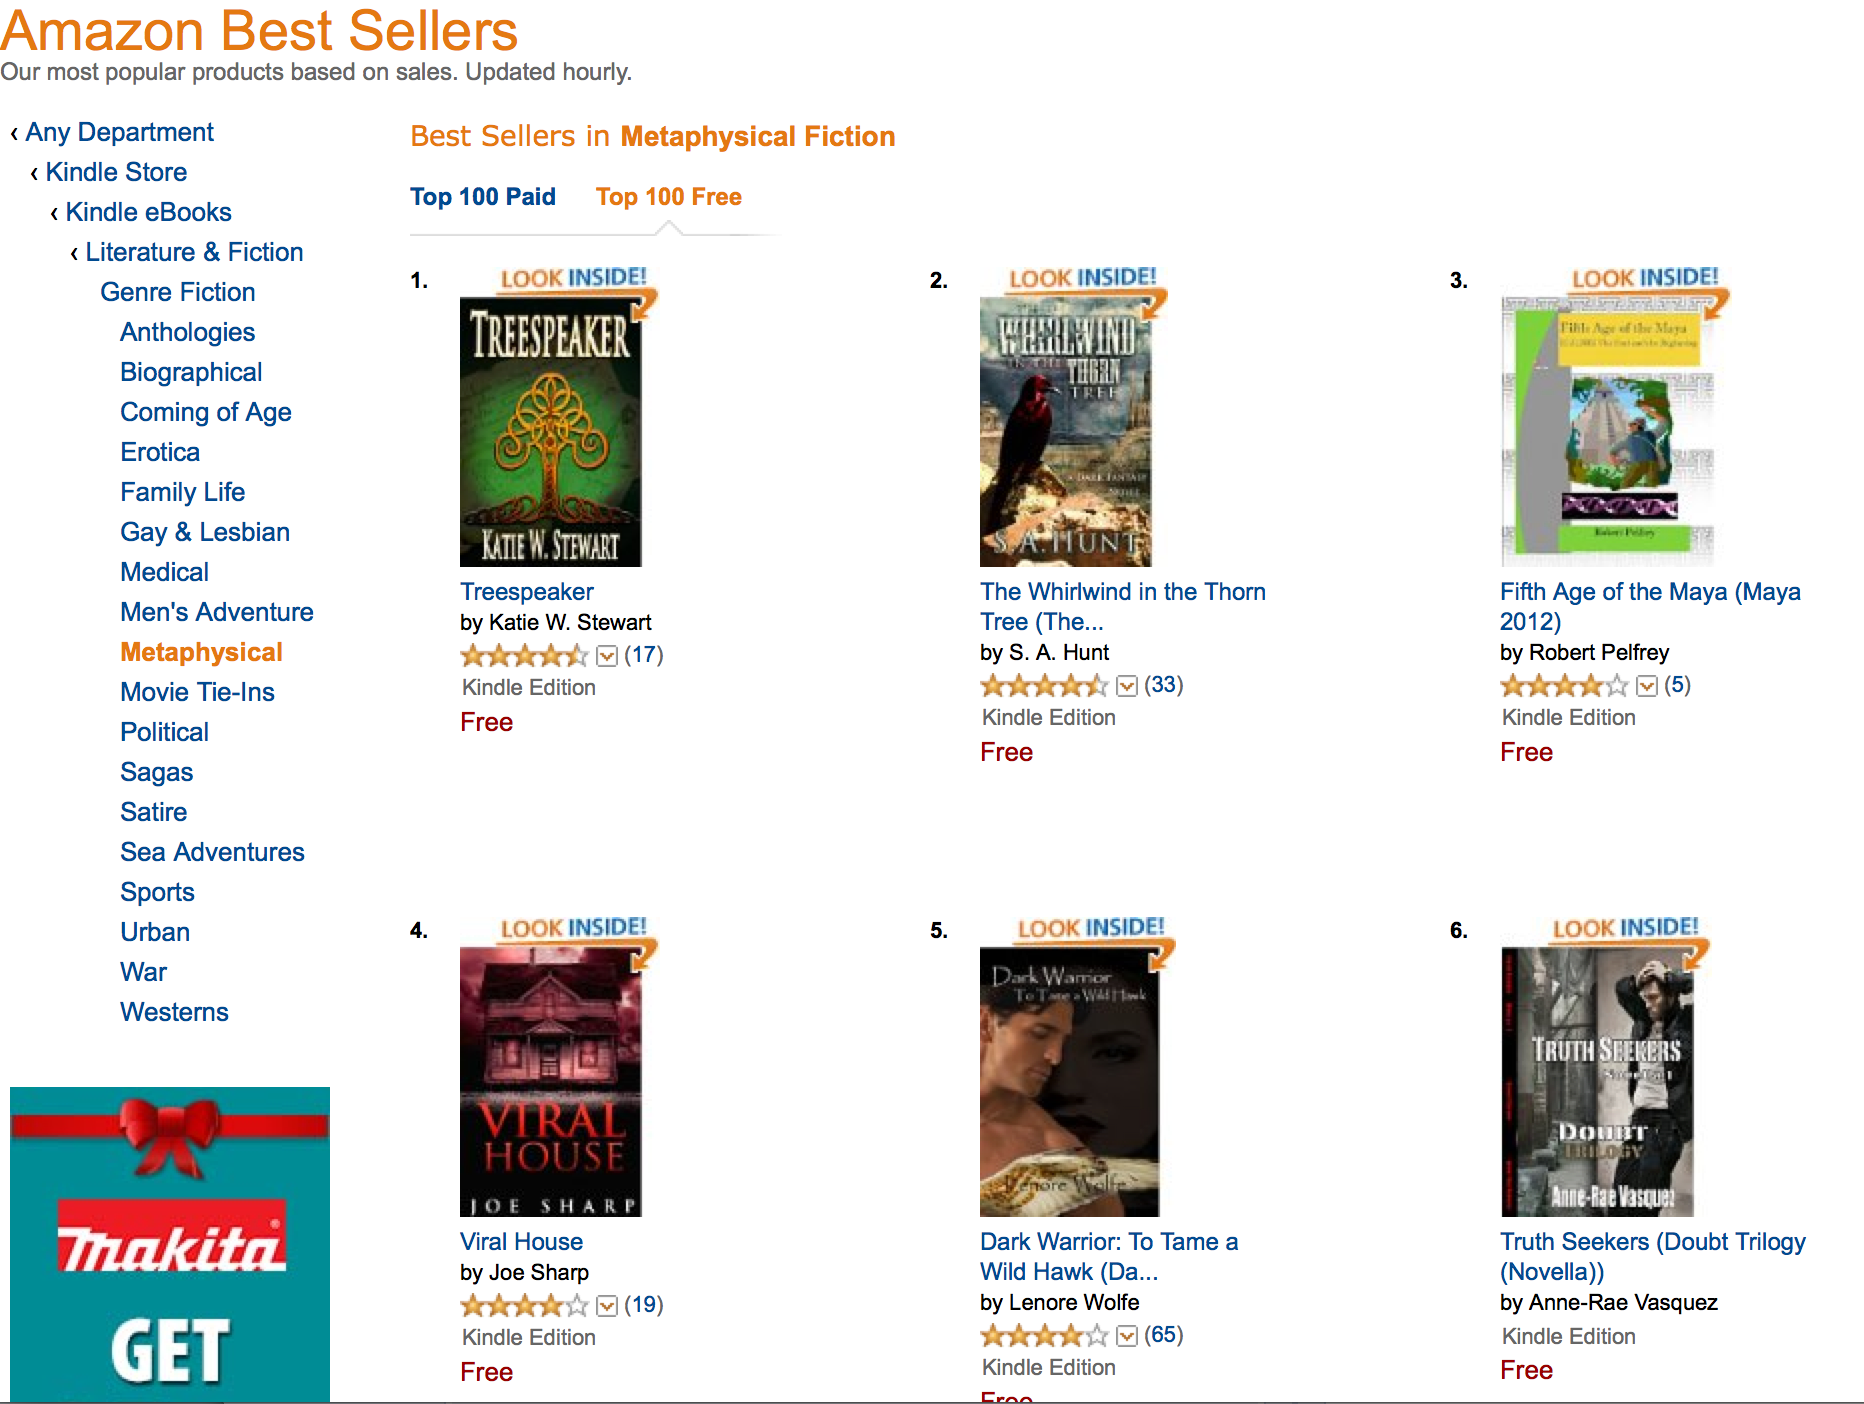 #6 in Amazon Best Seller list for newly released Truth Seekers part 1 novella